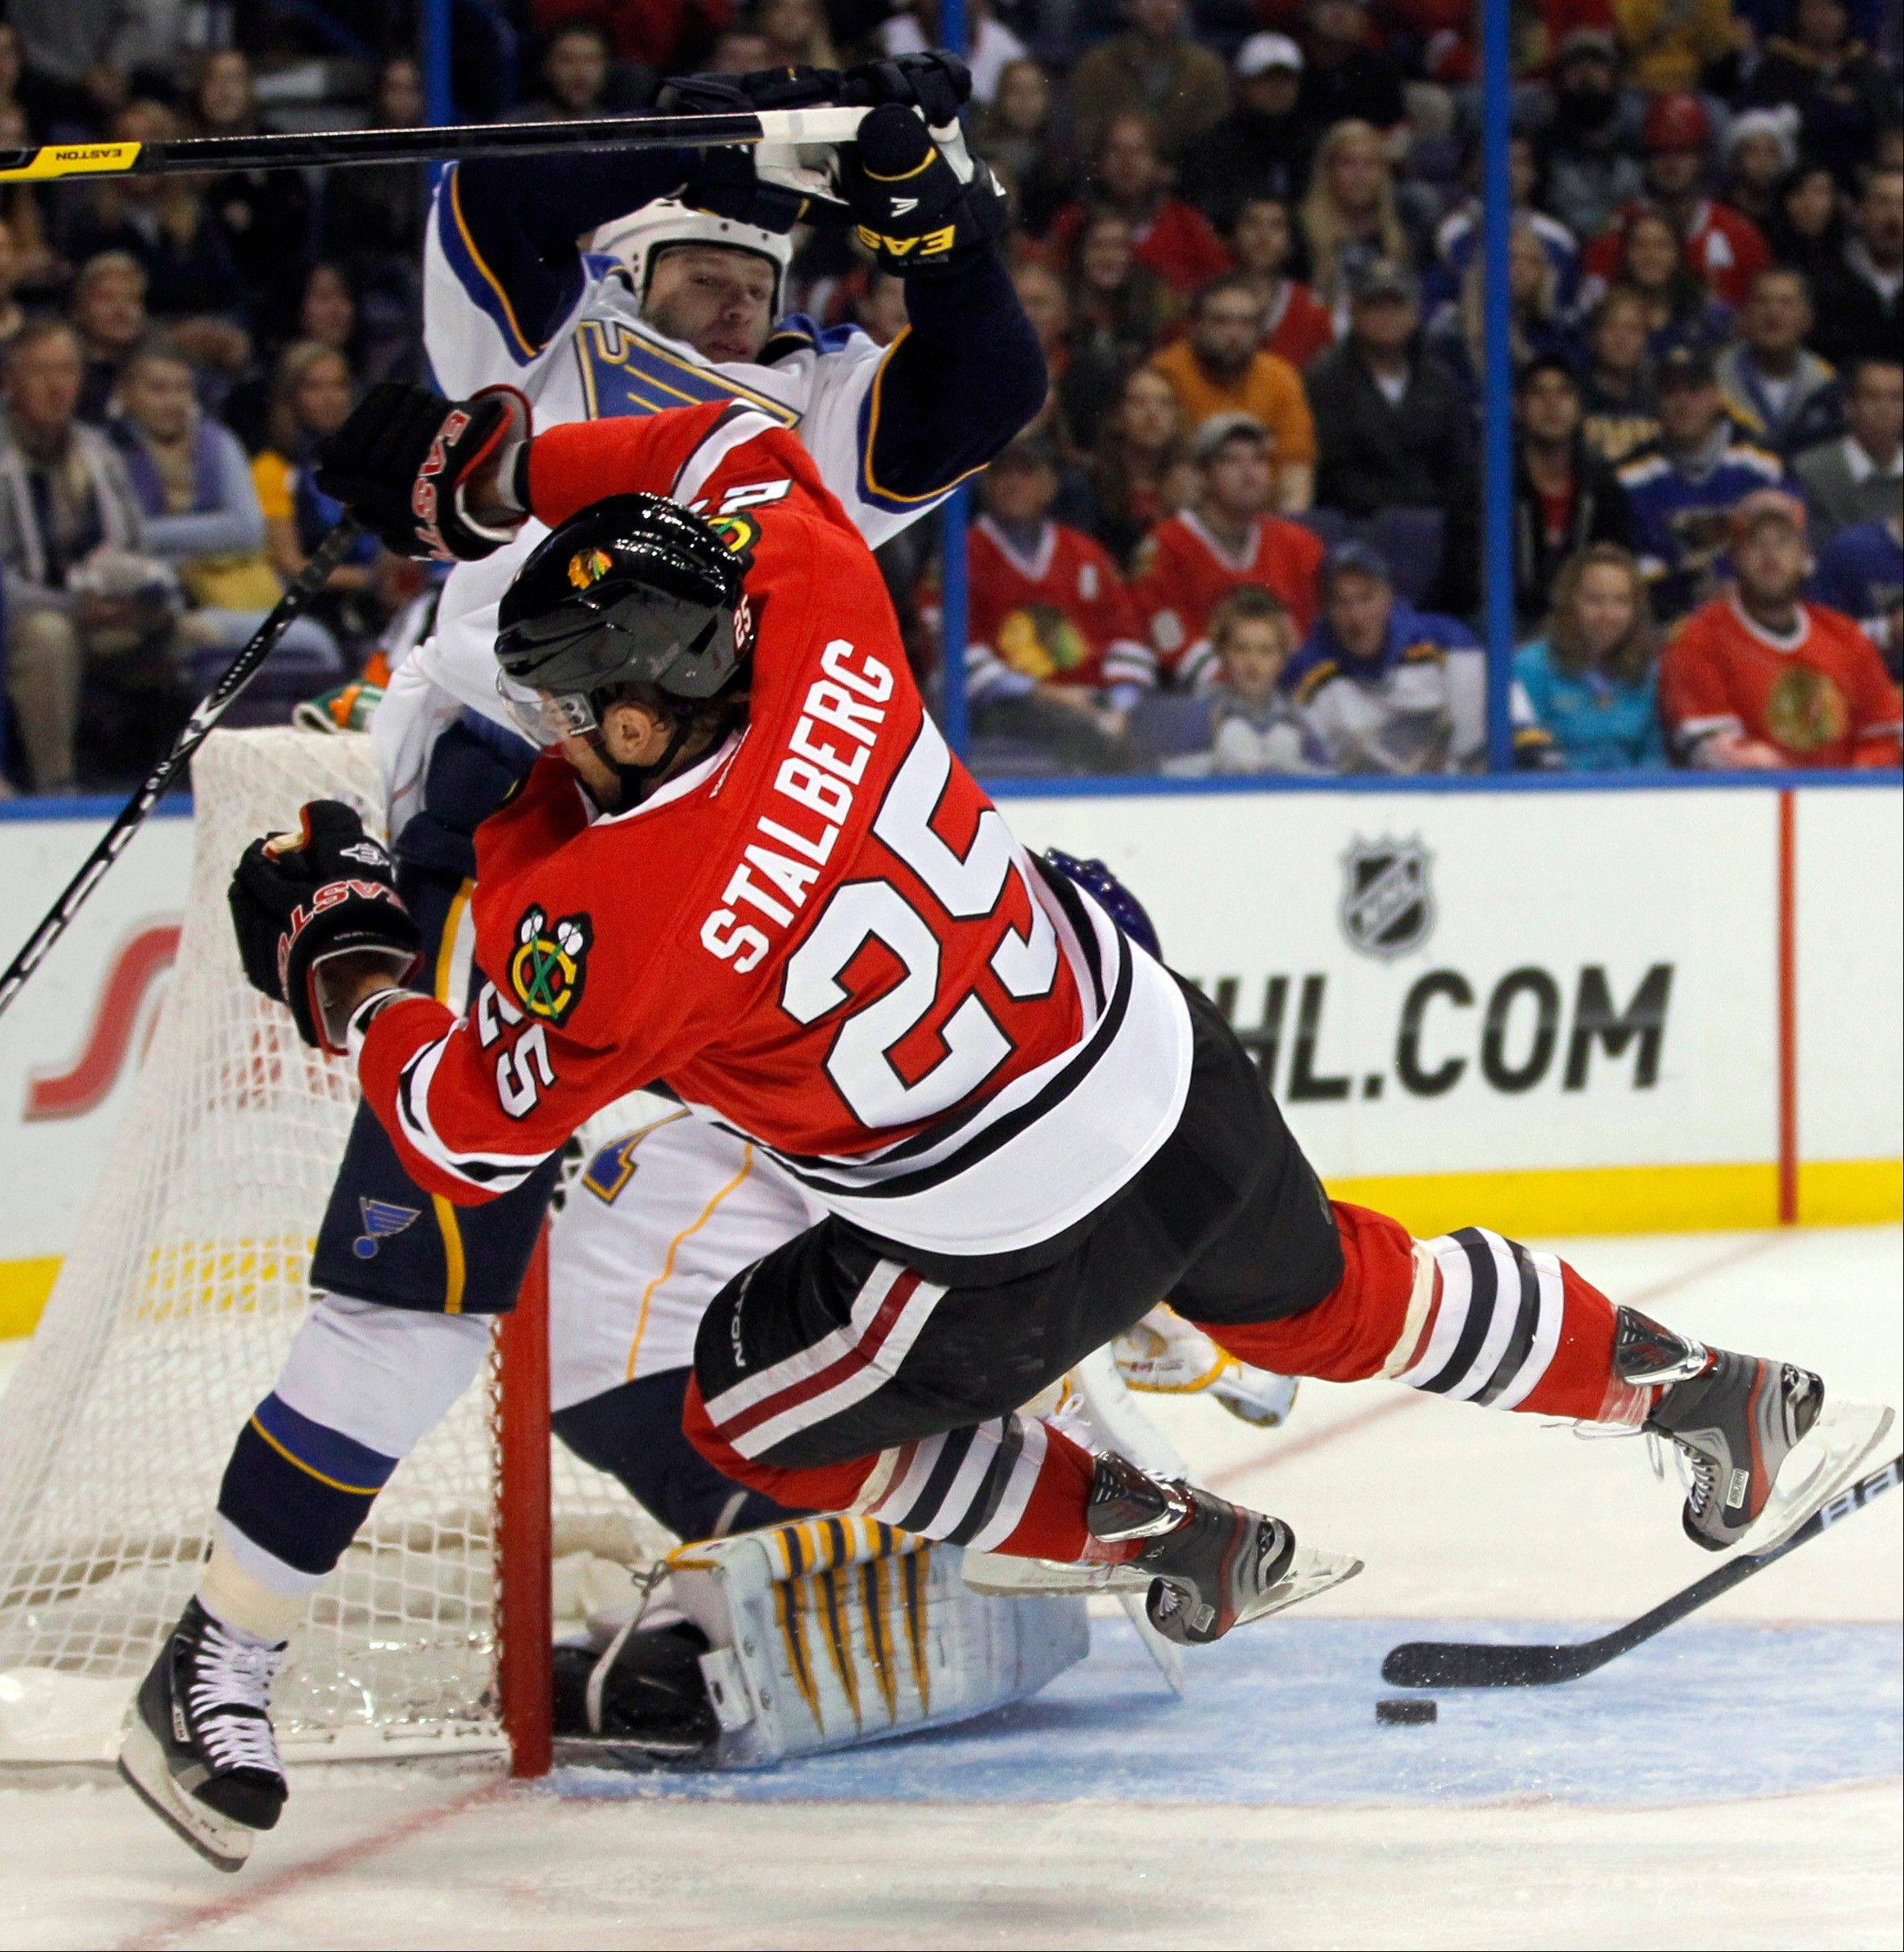 Scott Nichol of St. Louis and Viktor Stalberg of the Blackhawks during a 3-0 Blues win Tuesday night. The Blues outhit the Hawks 19-14 in the game.